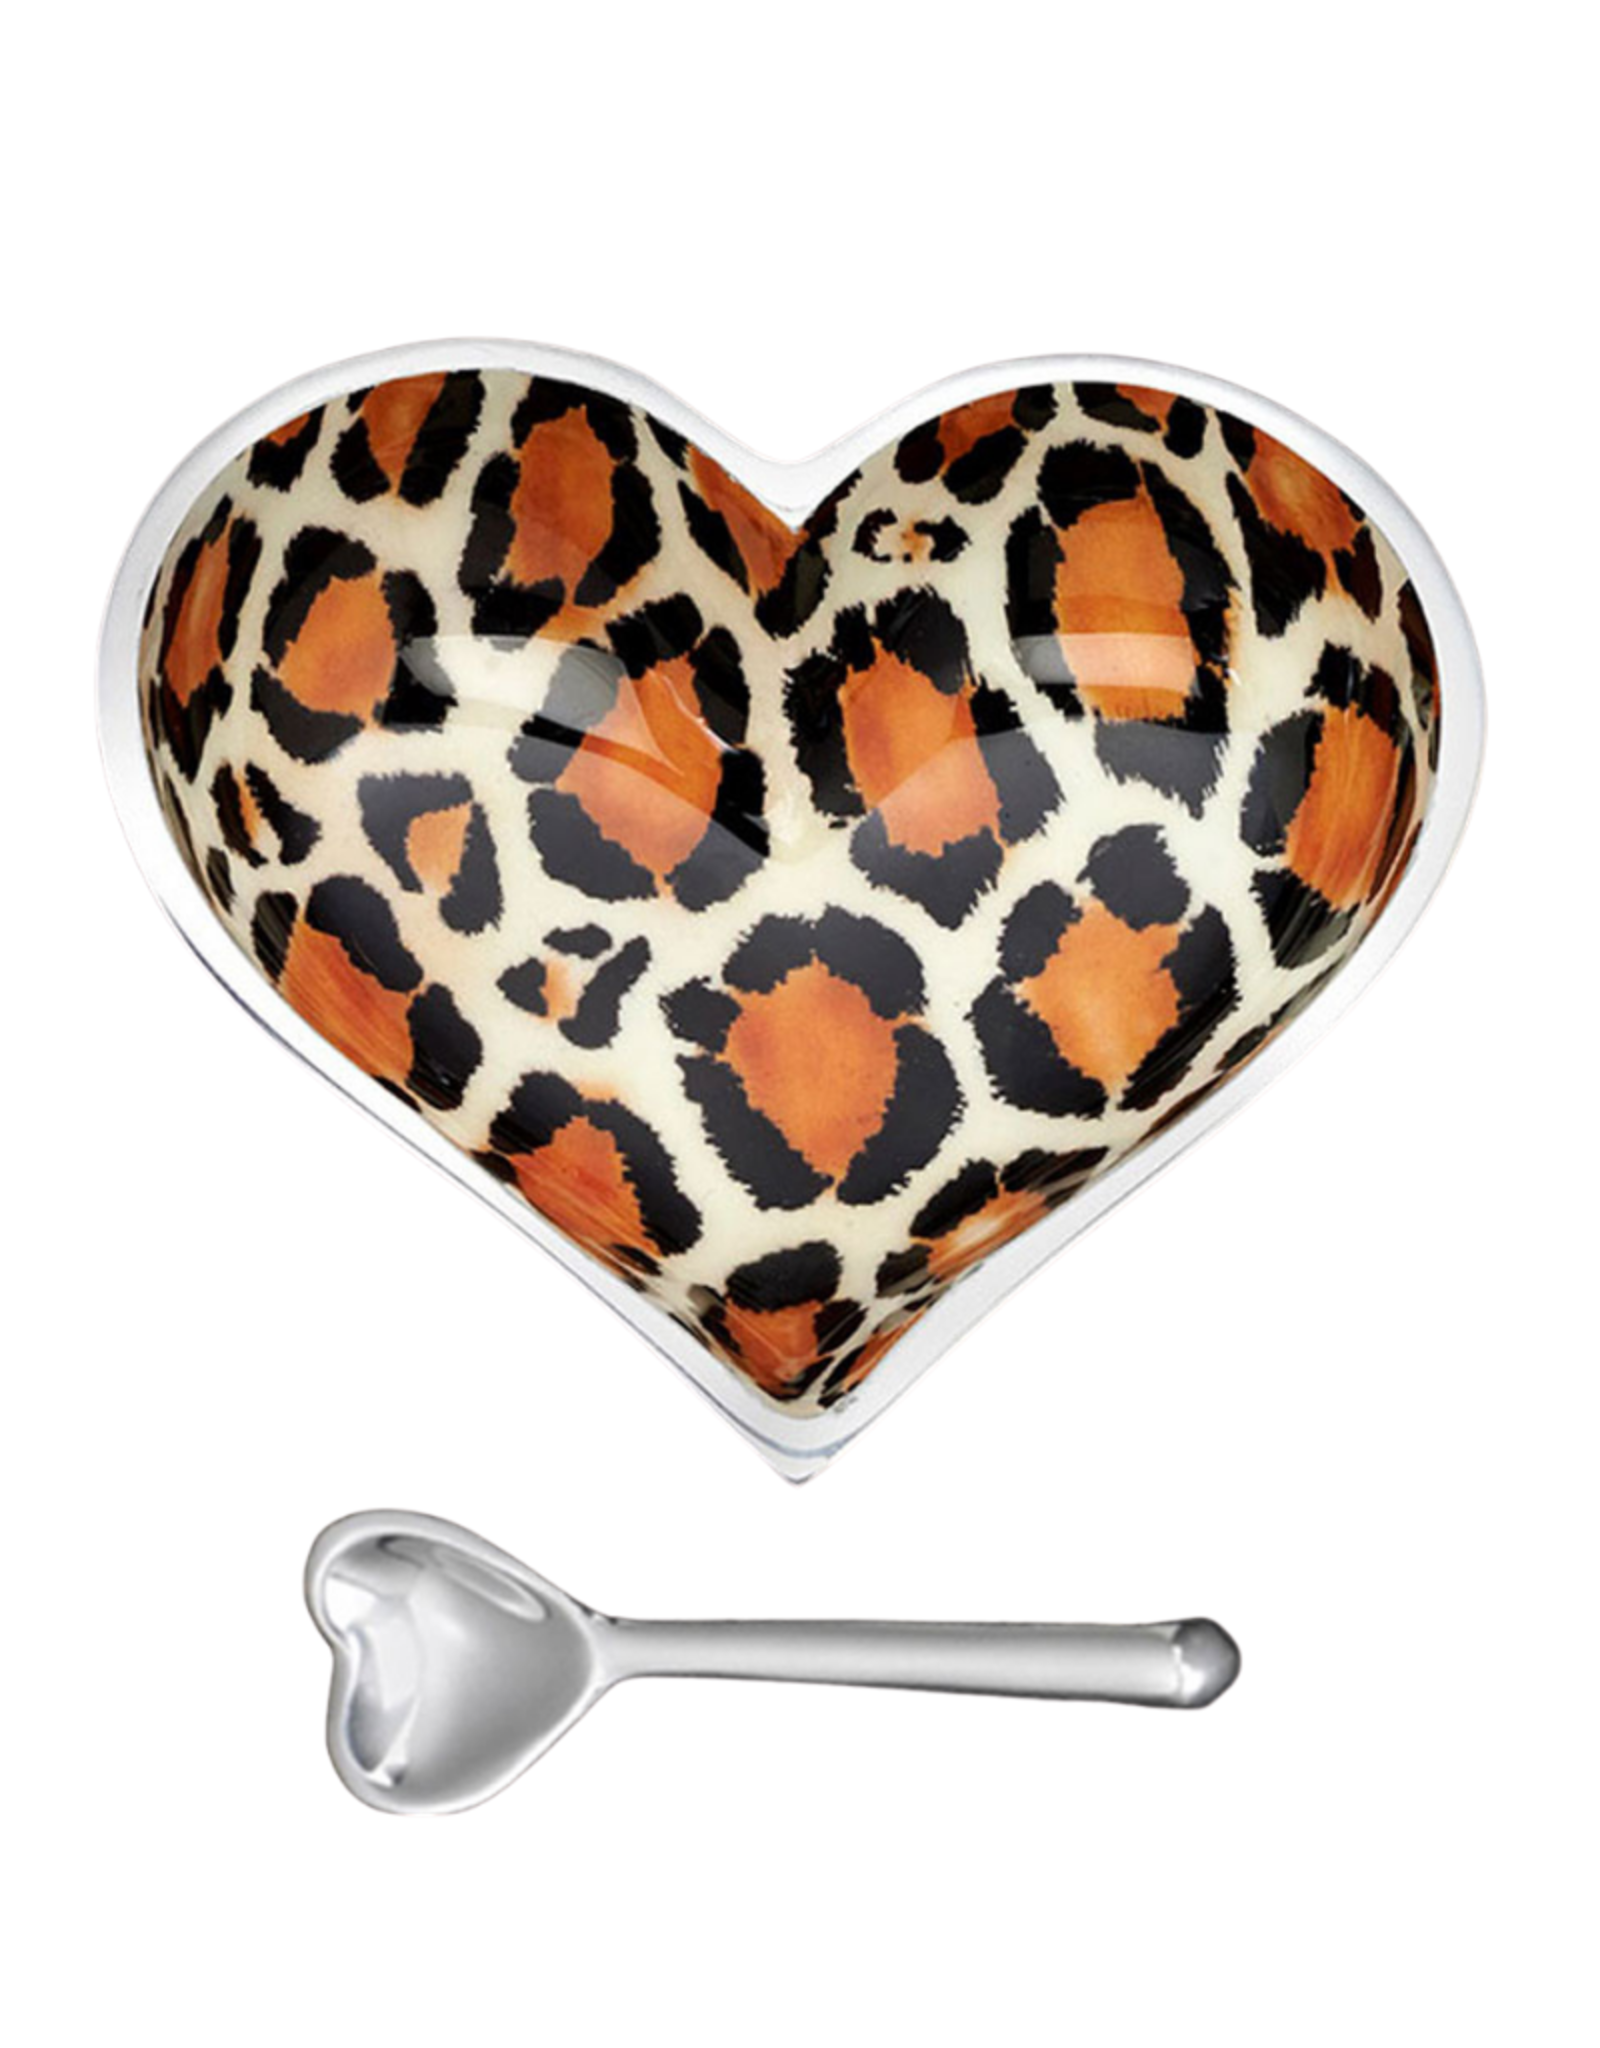 Leopard  Heart Bowl & Spoon